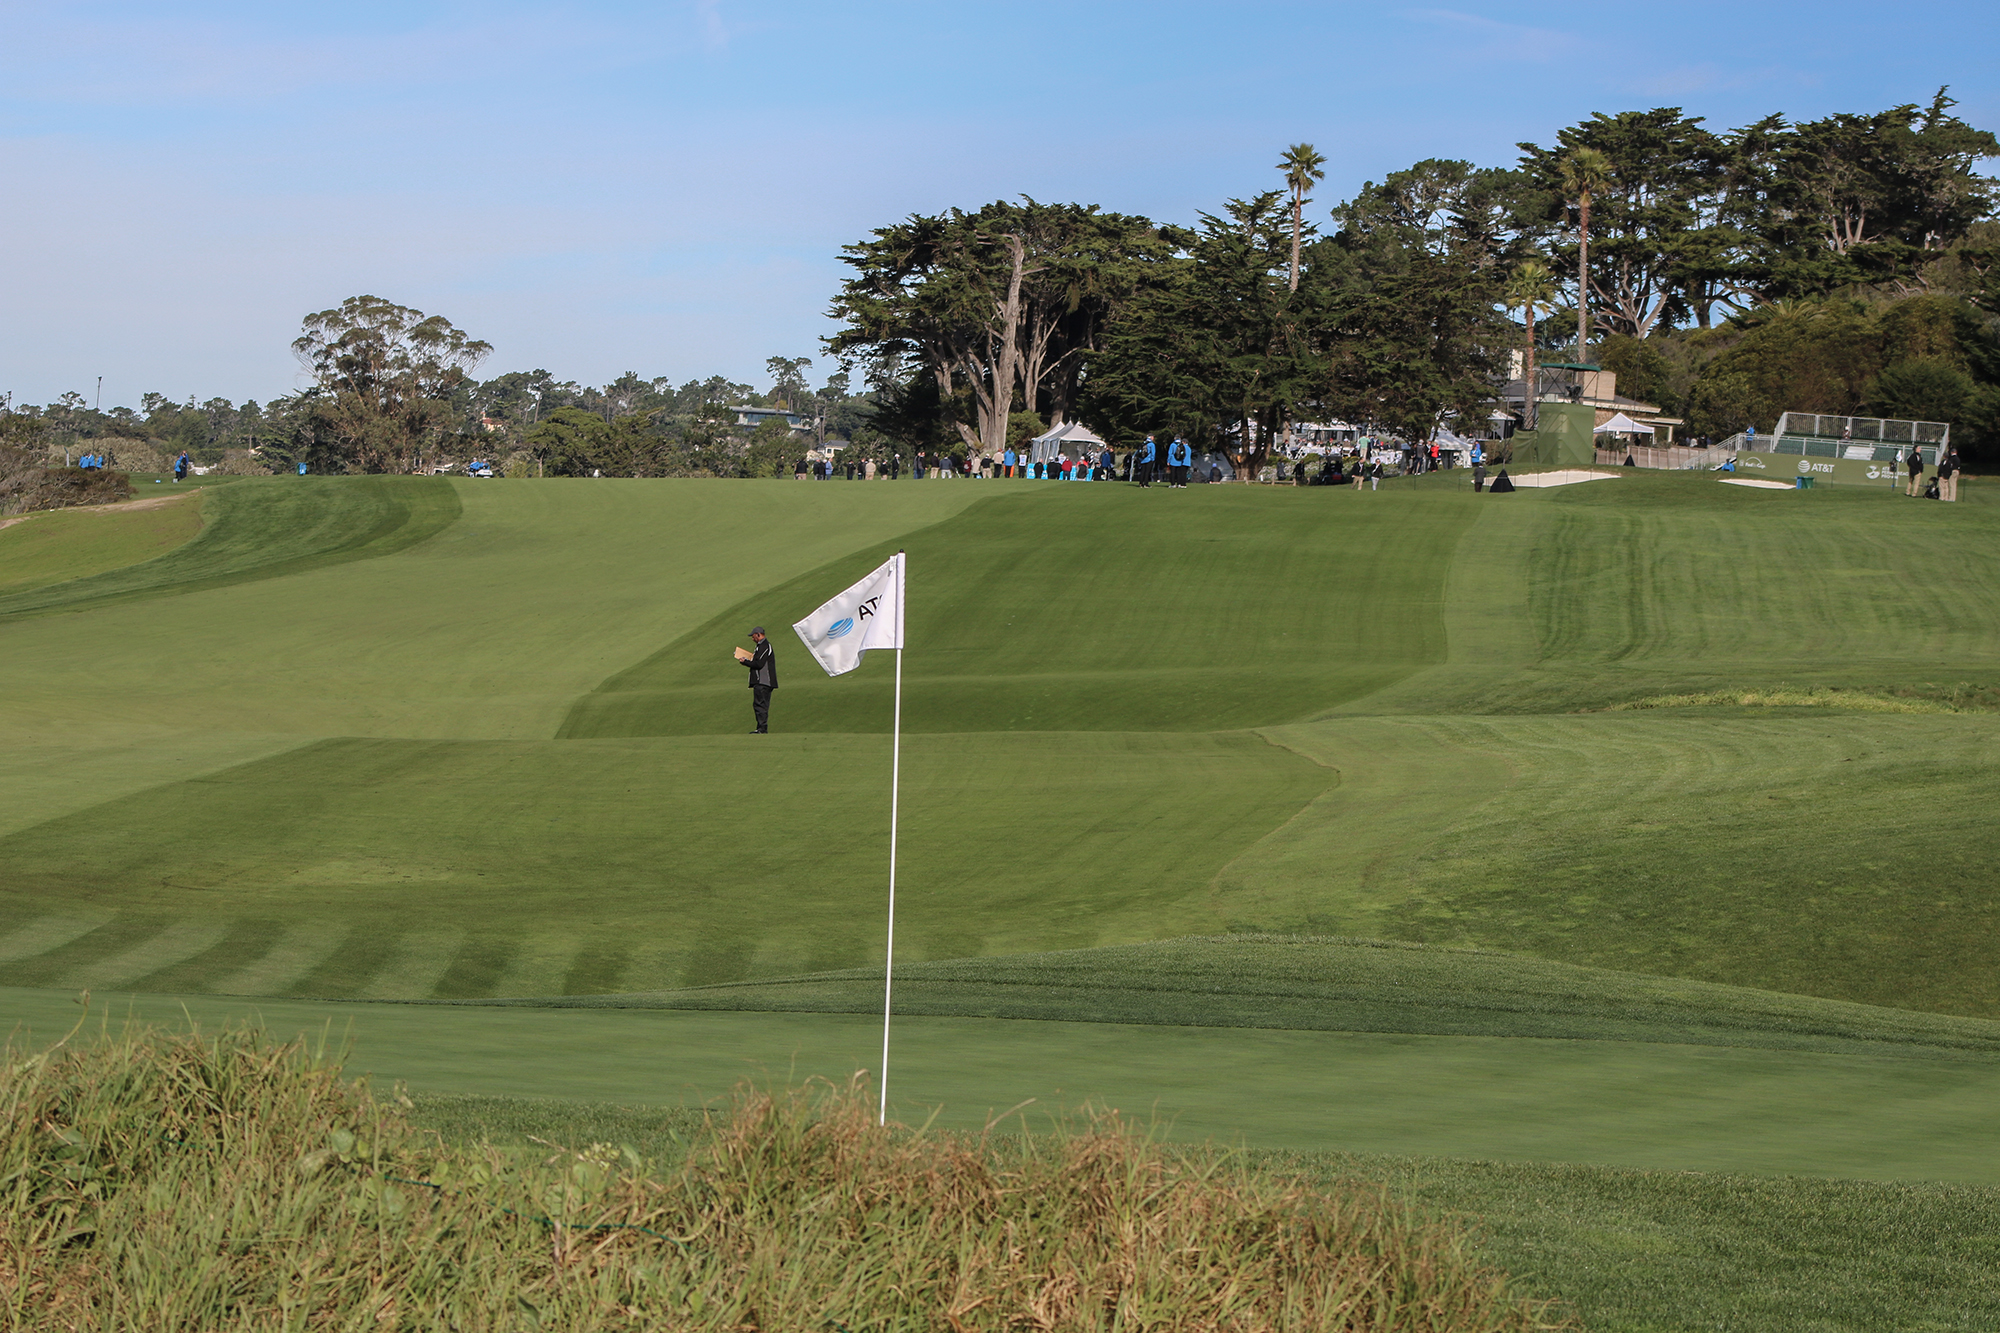 9th hole at Pebble Beach with rough lines